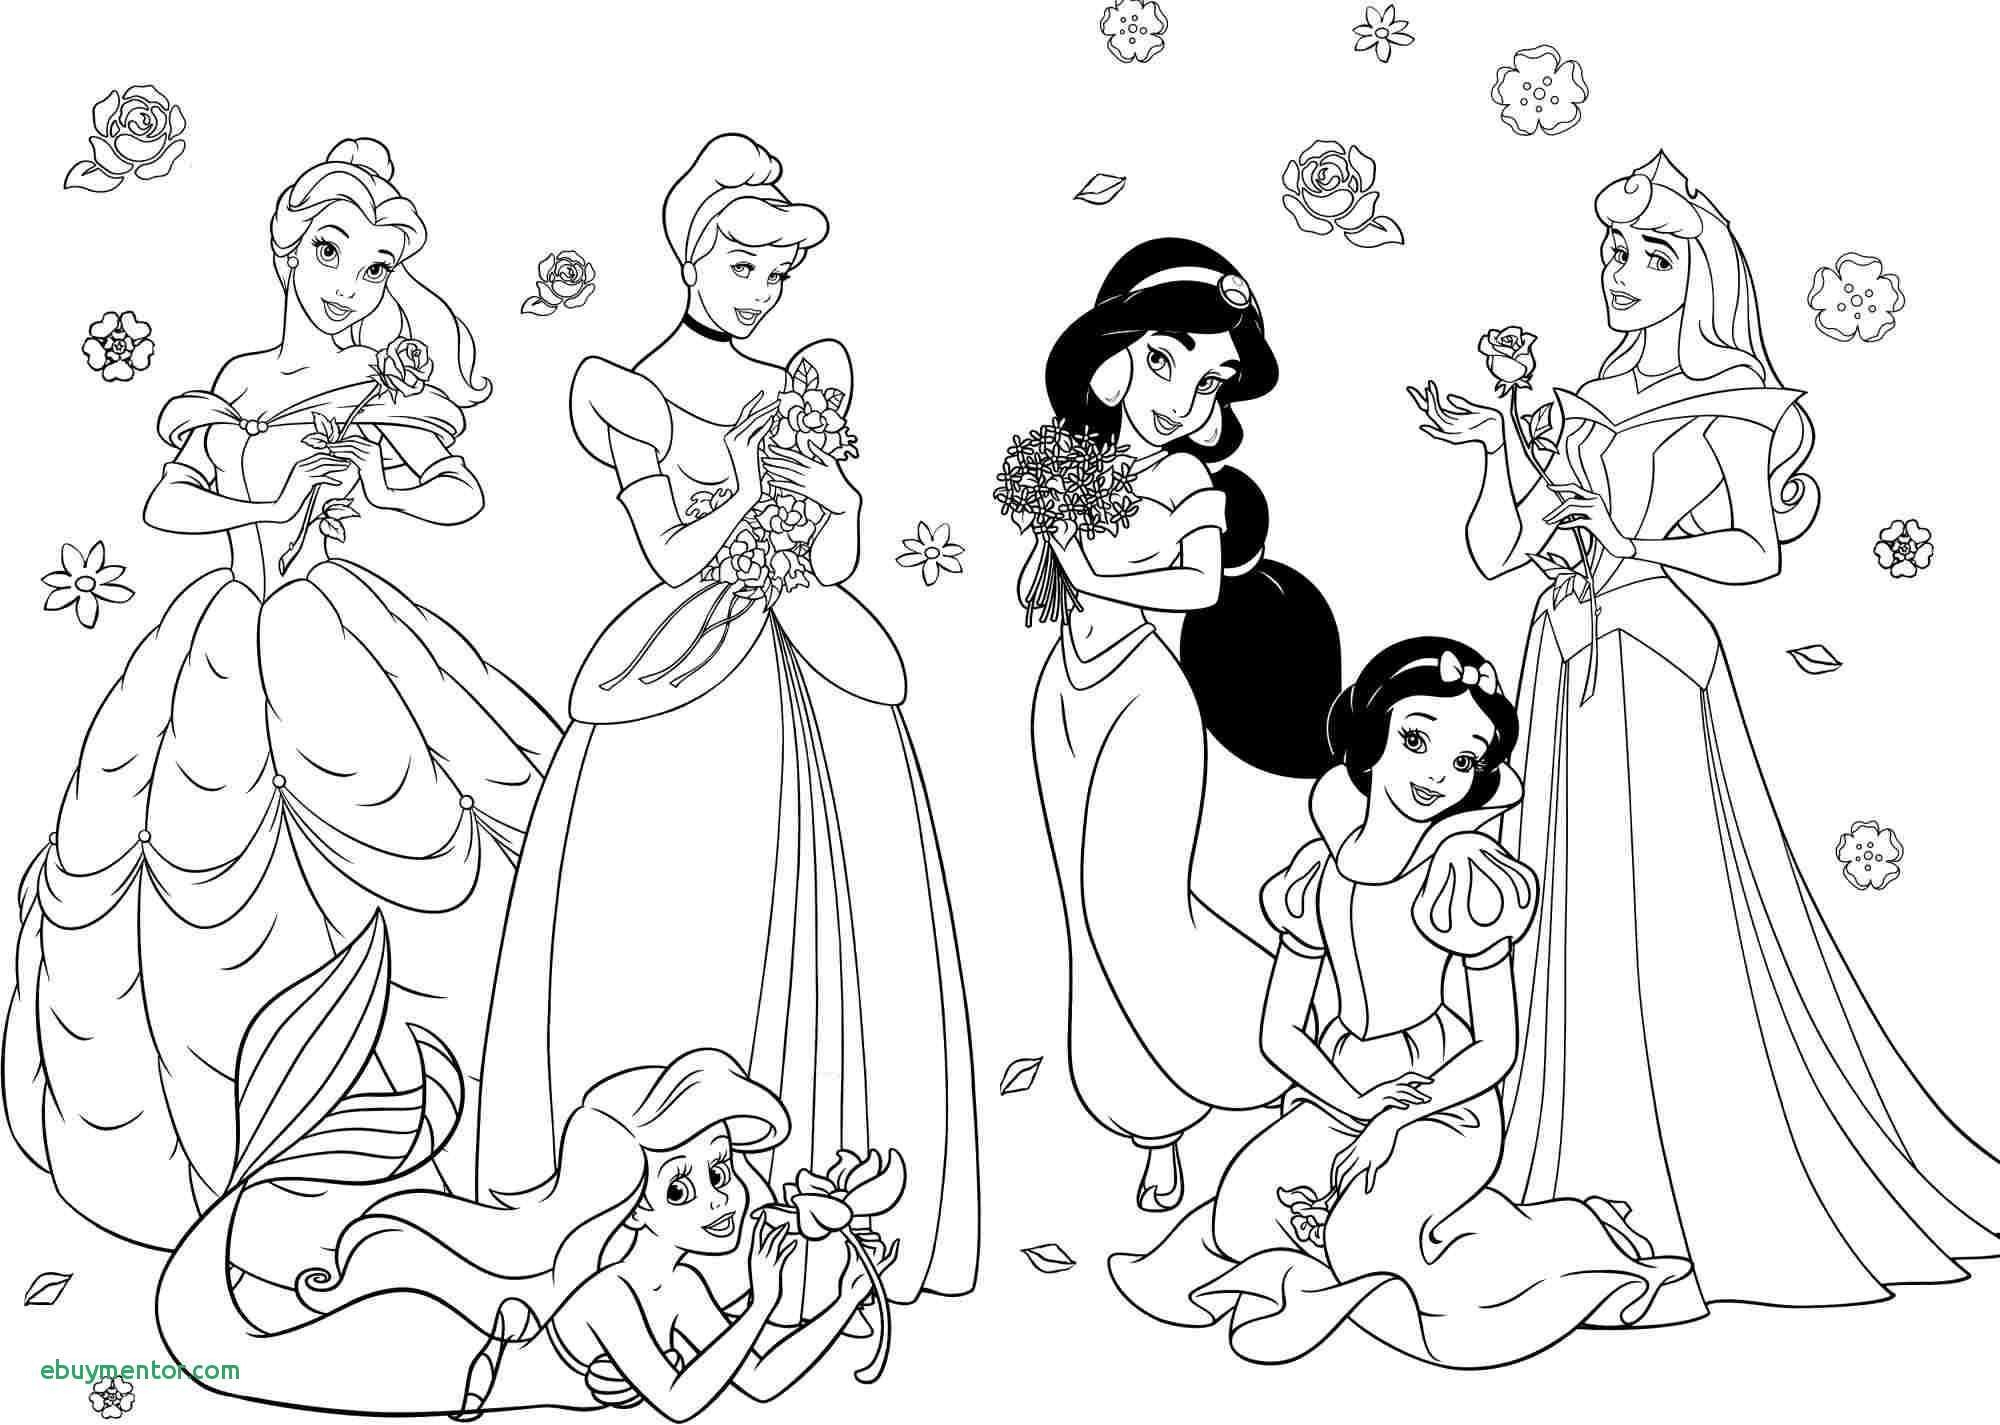 coloring-pages-princess-dog-of-coloring-pages-princess-dog Coloring Pages Princess Dog Cartoon